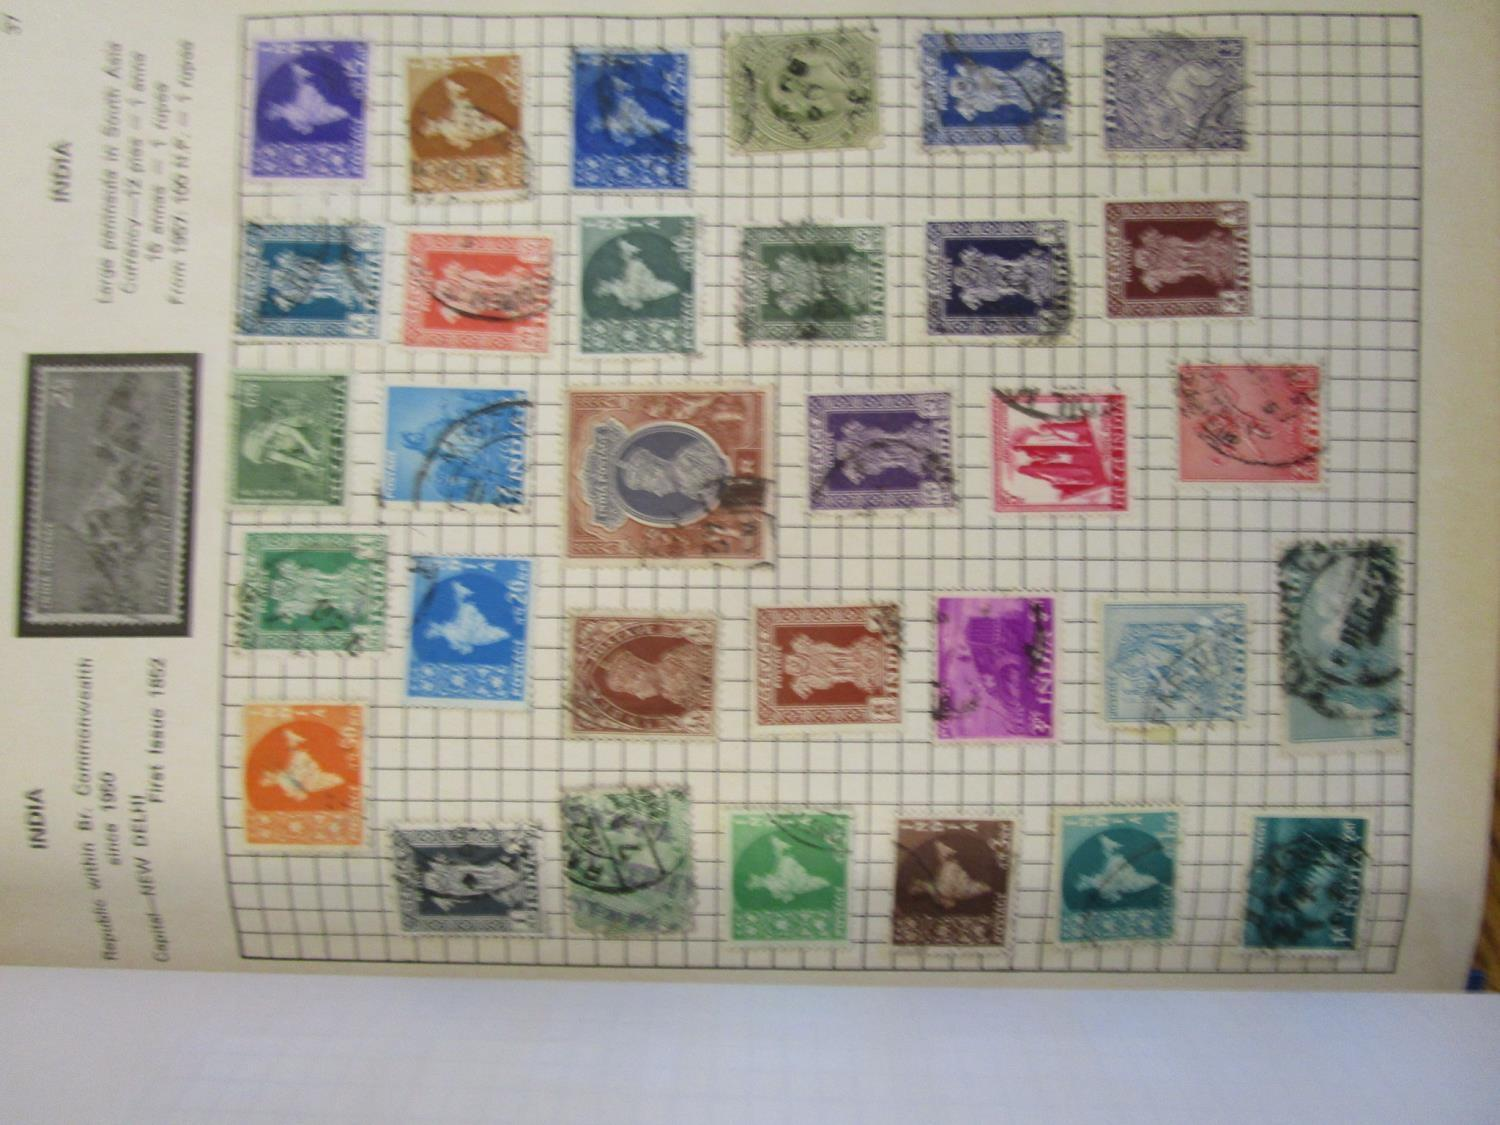 Mixed stamps from around the world mounted in albums and loose to include Victorian Penny Reds, - Image 3 of 18